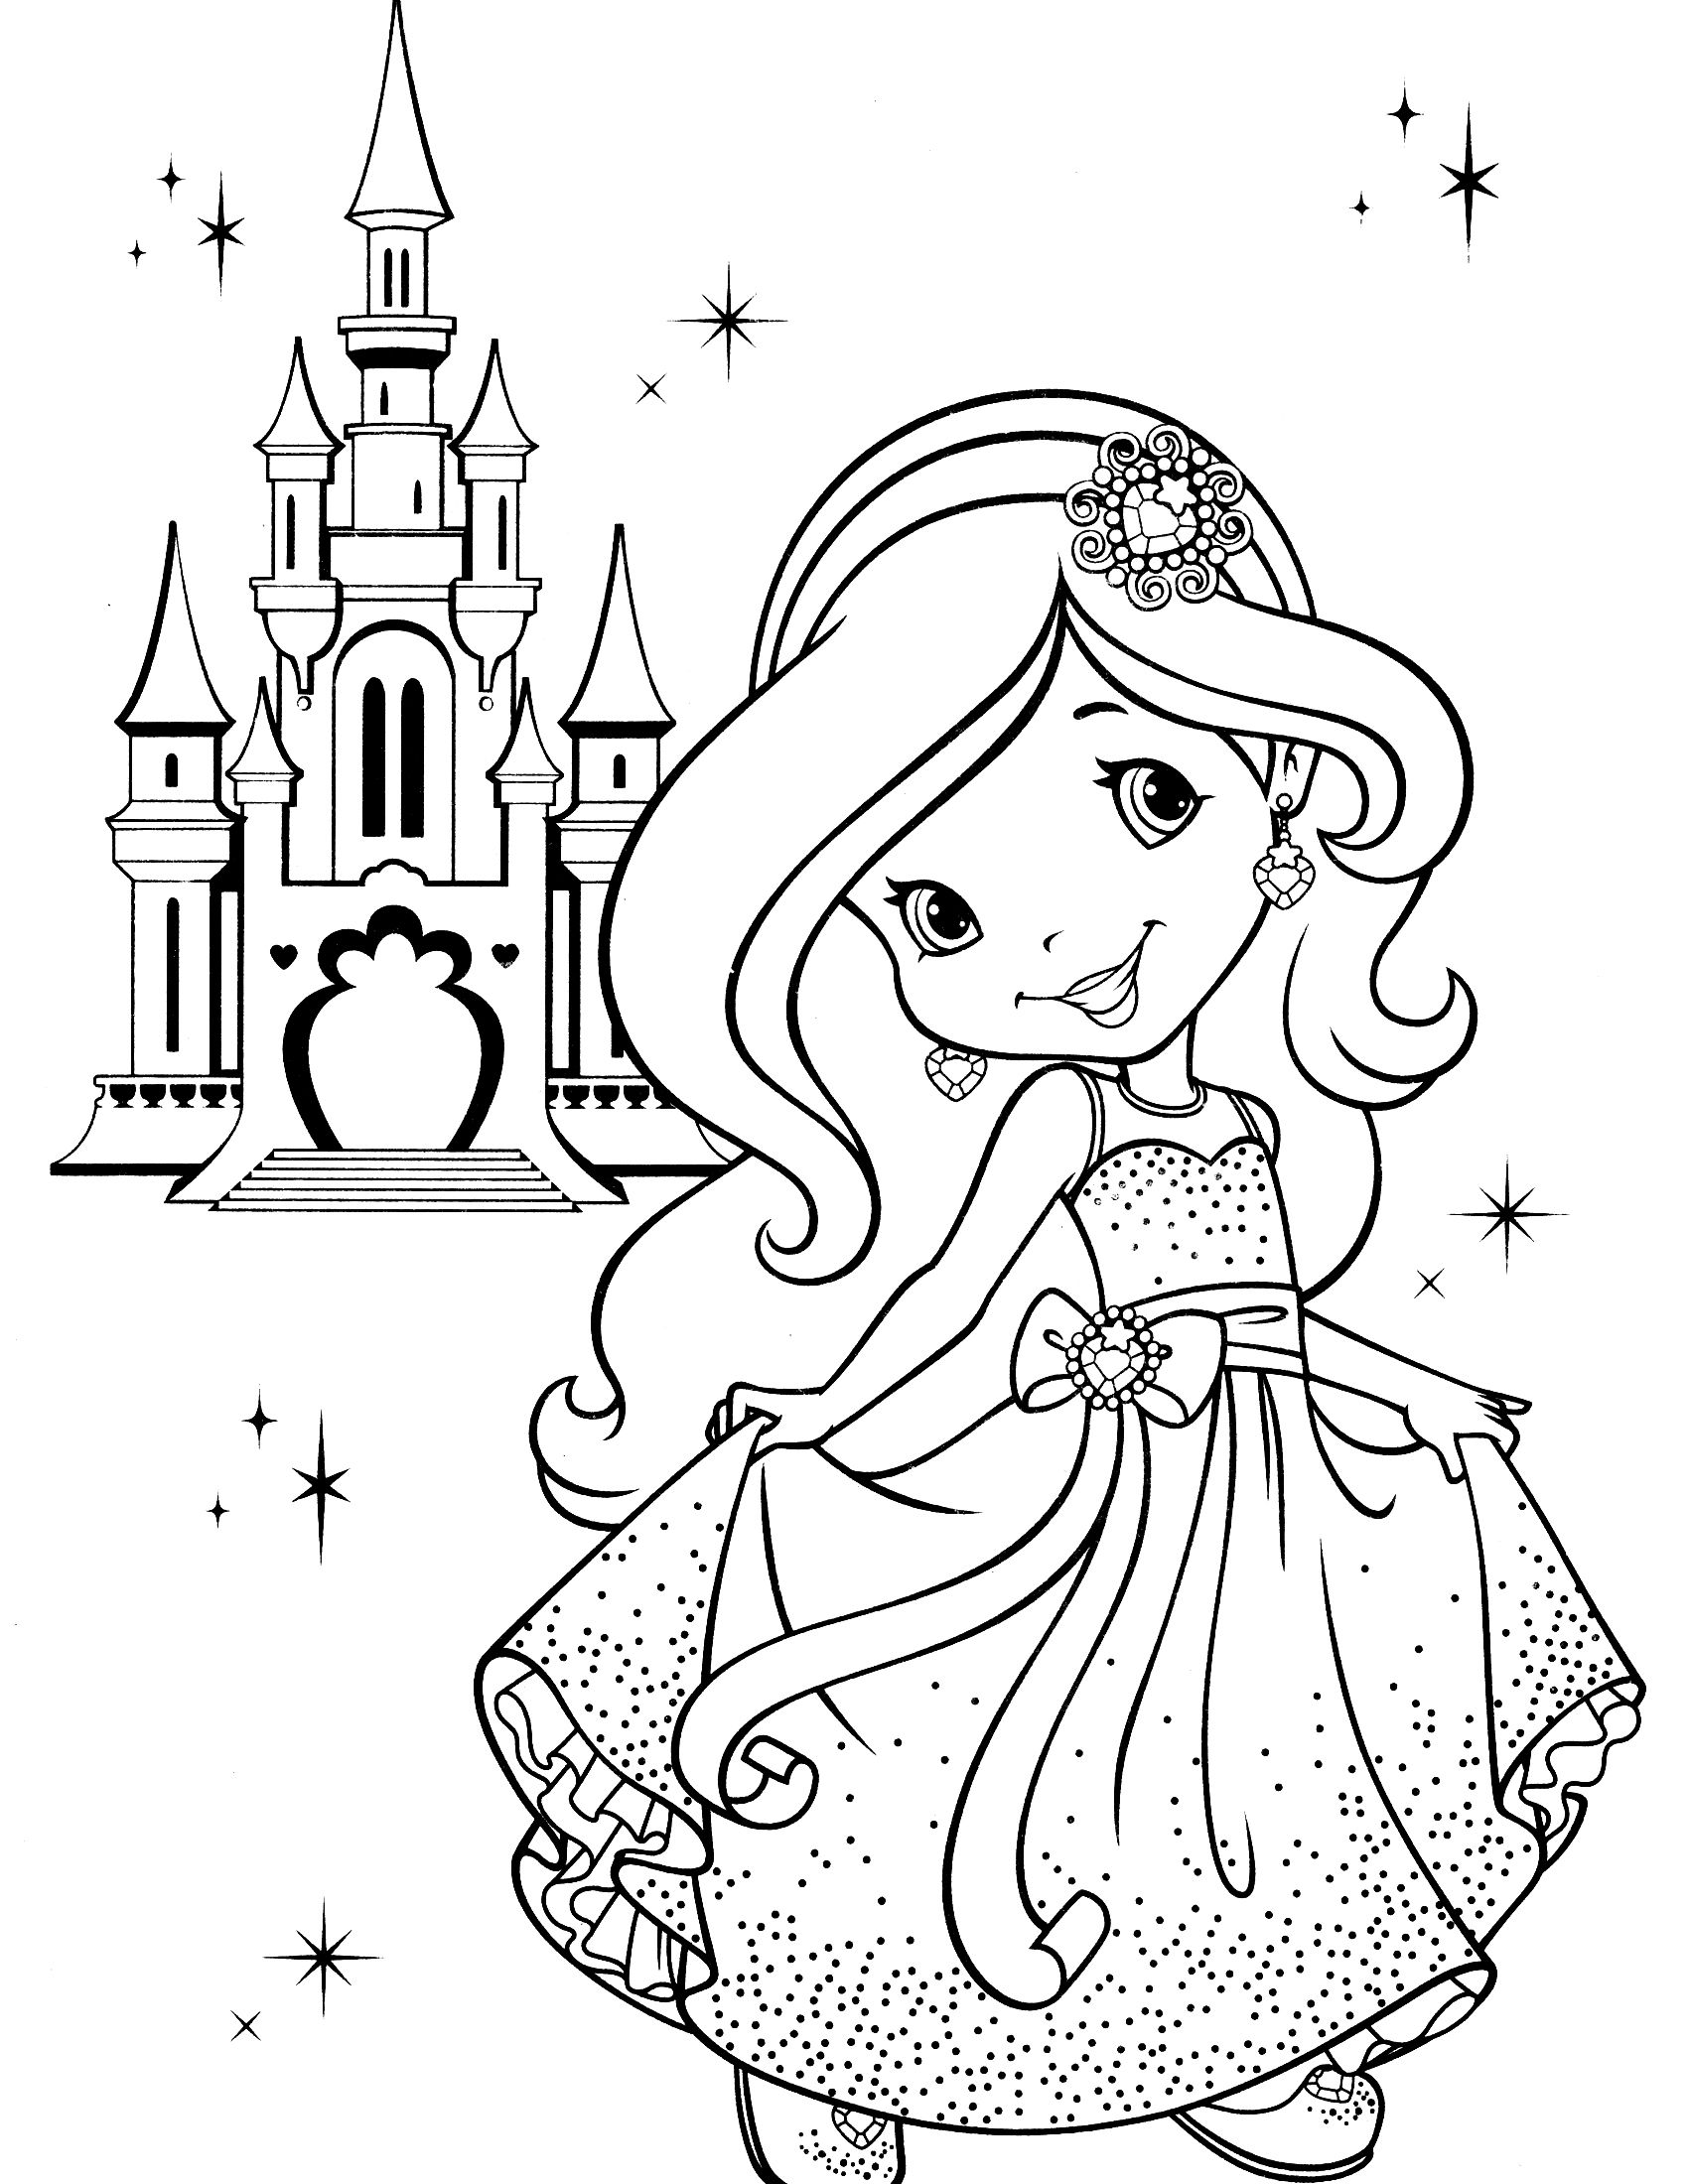 strawberry shortcake coloring page  DIY ideas  Pinterest  Adult